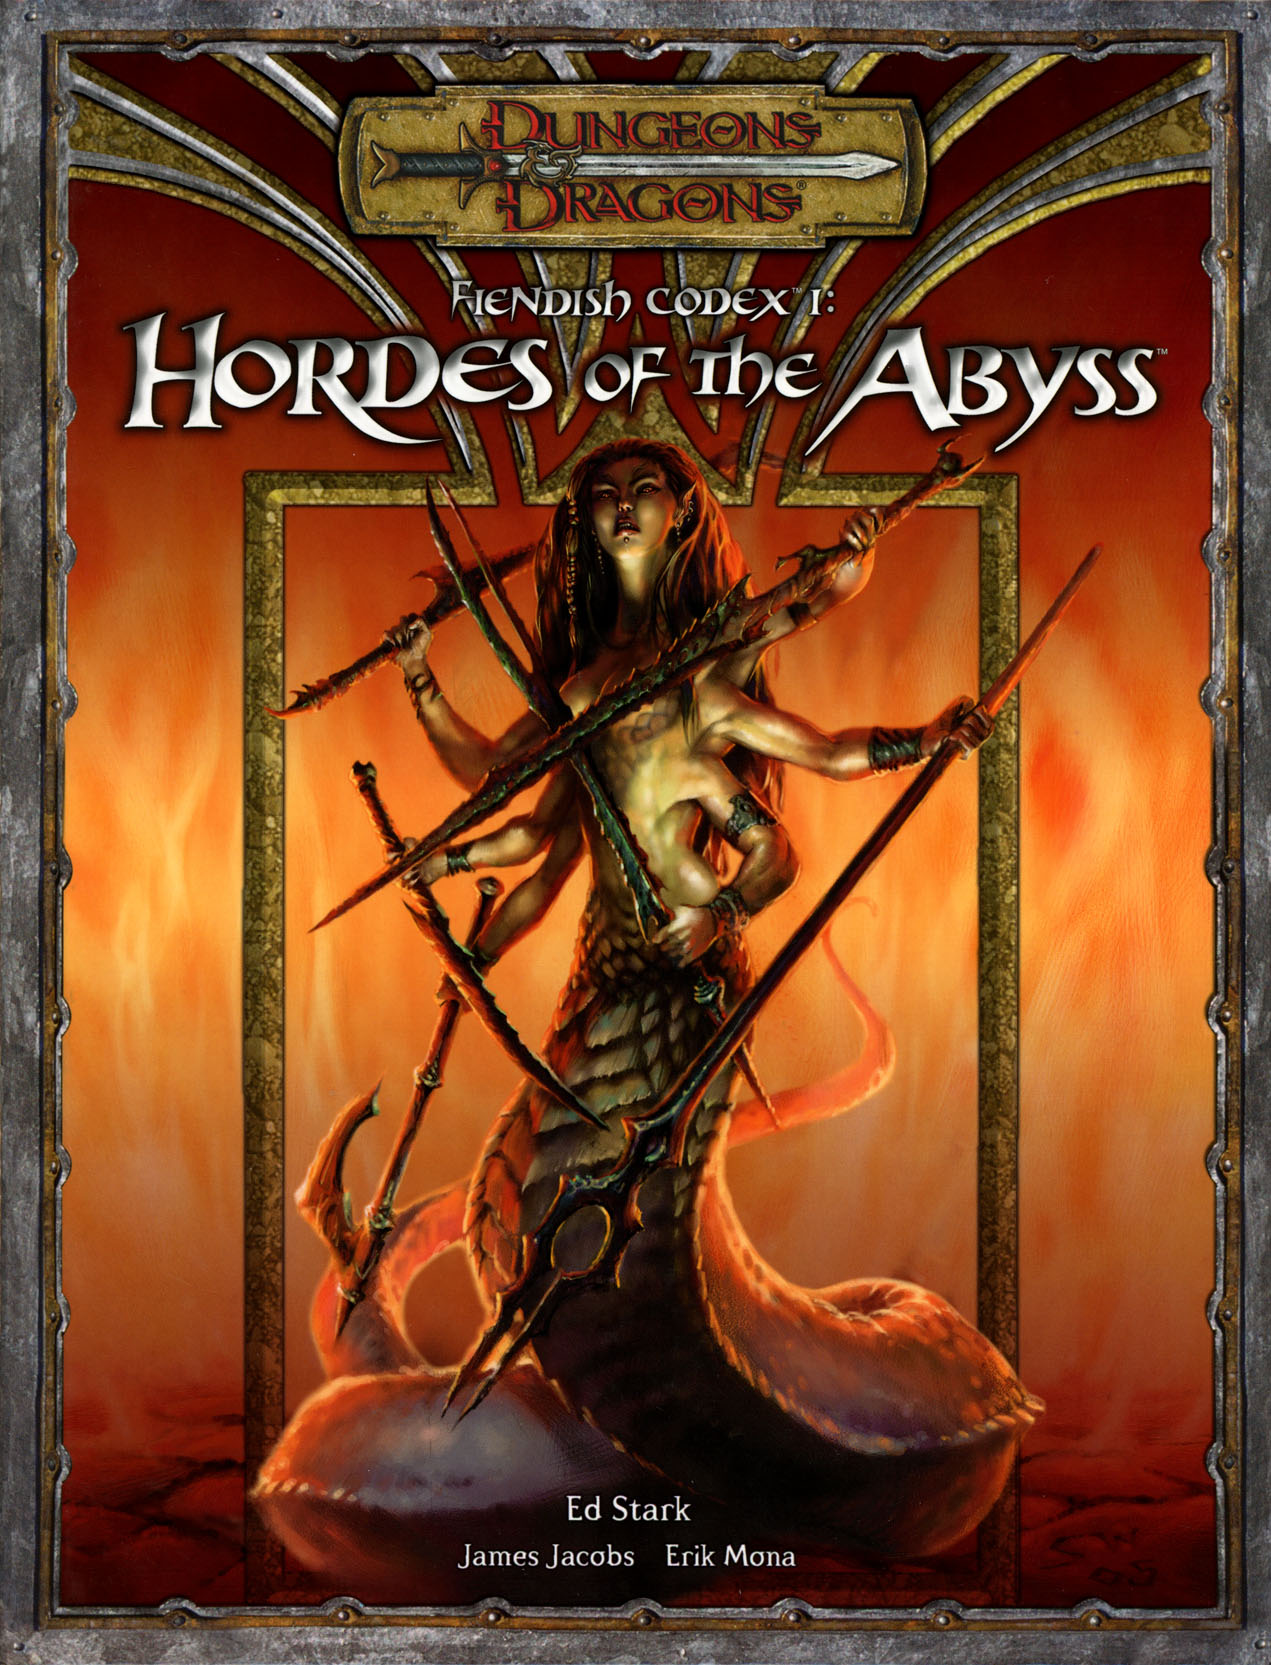 File:Fiendish Codex I - Hordes of the Abyss.jpg